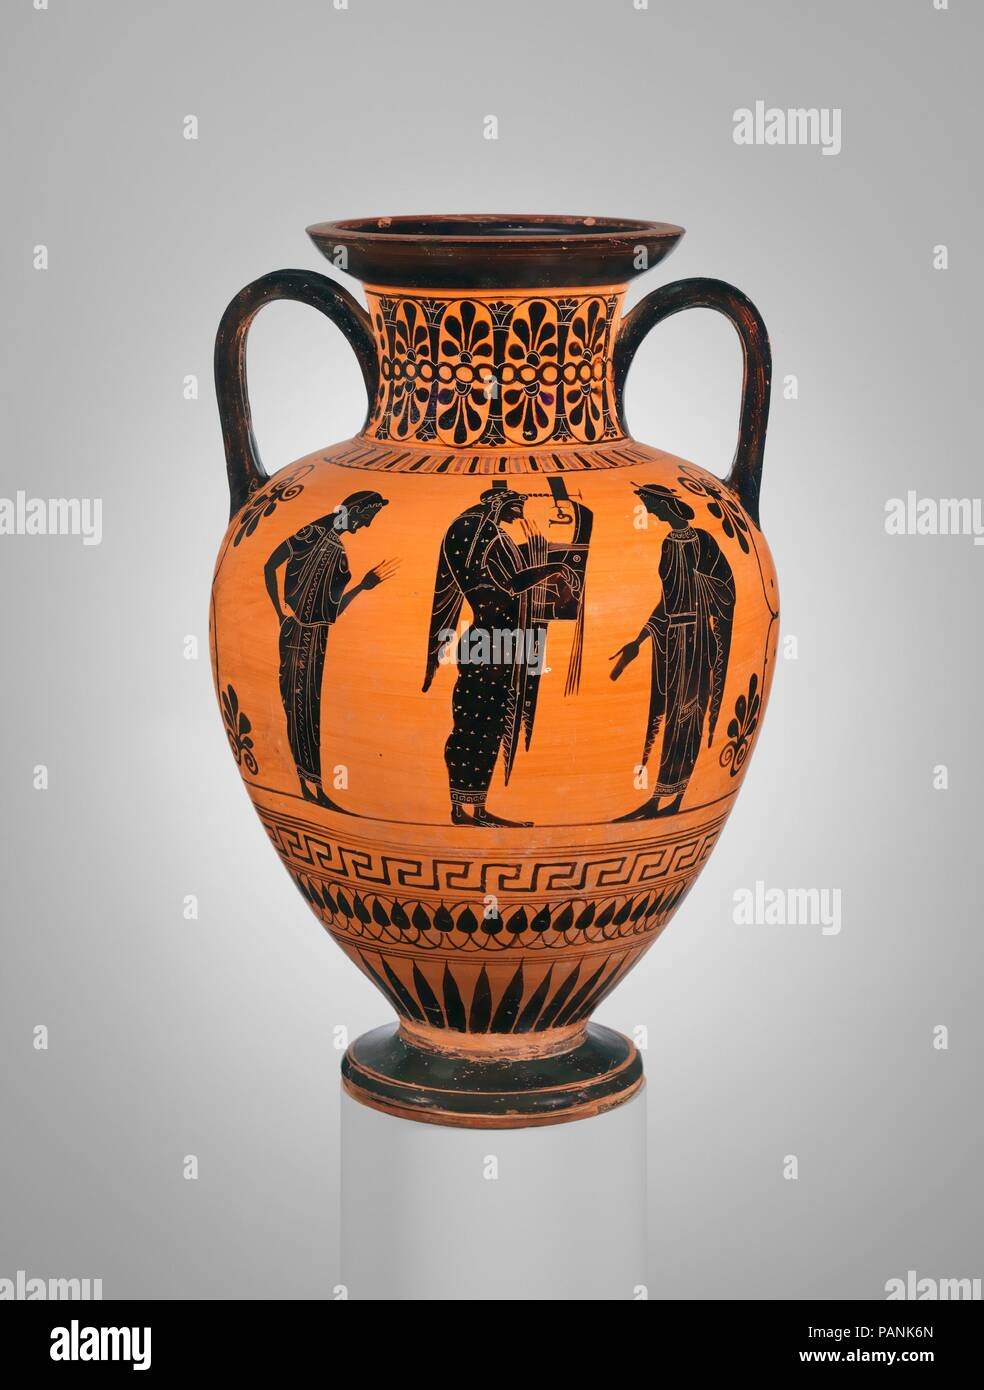 The Portland Vase - Ancient History Encyclopedia